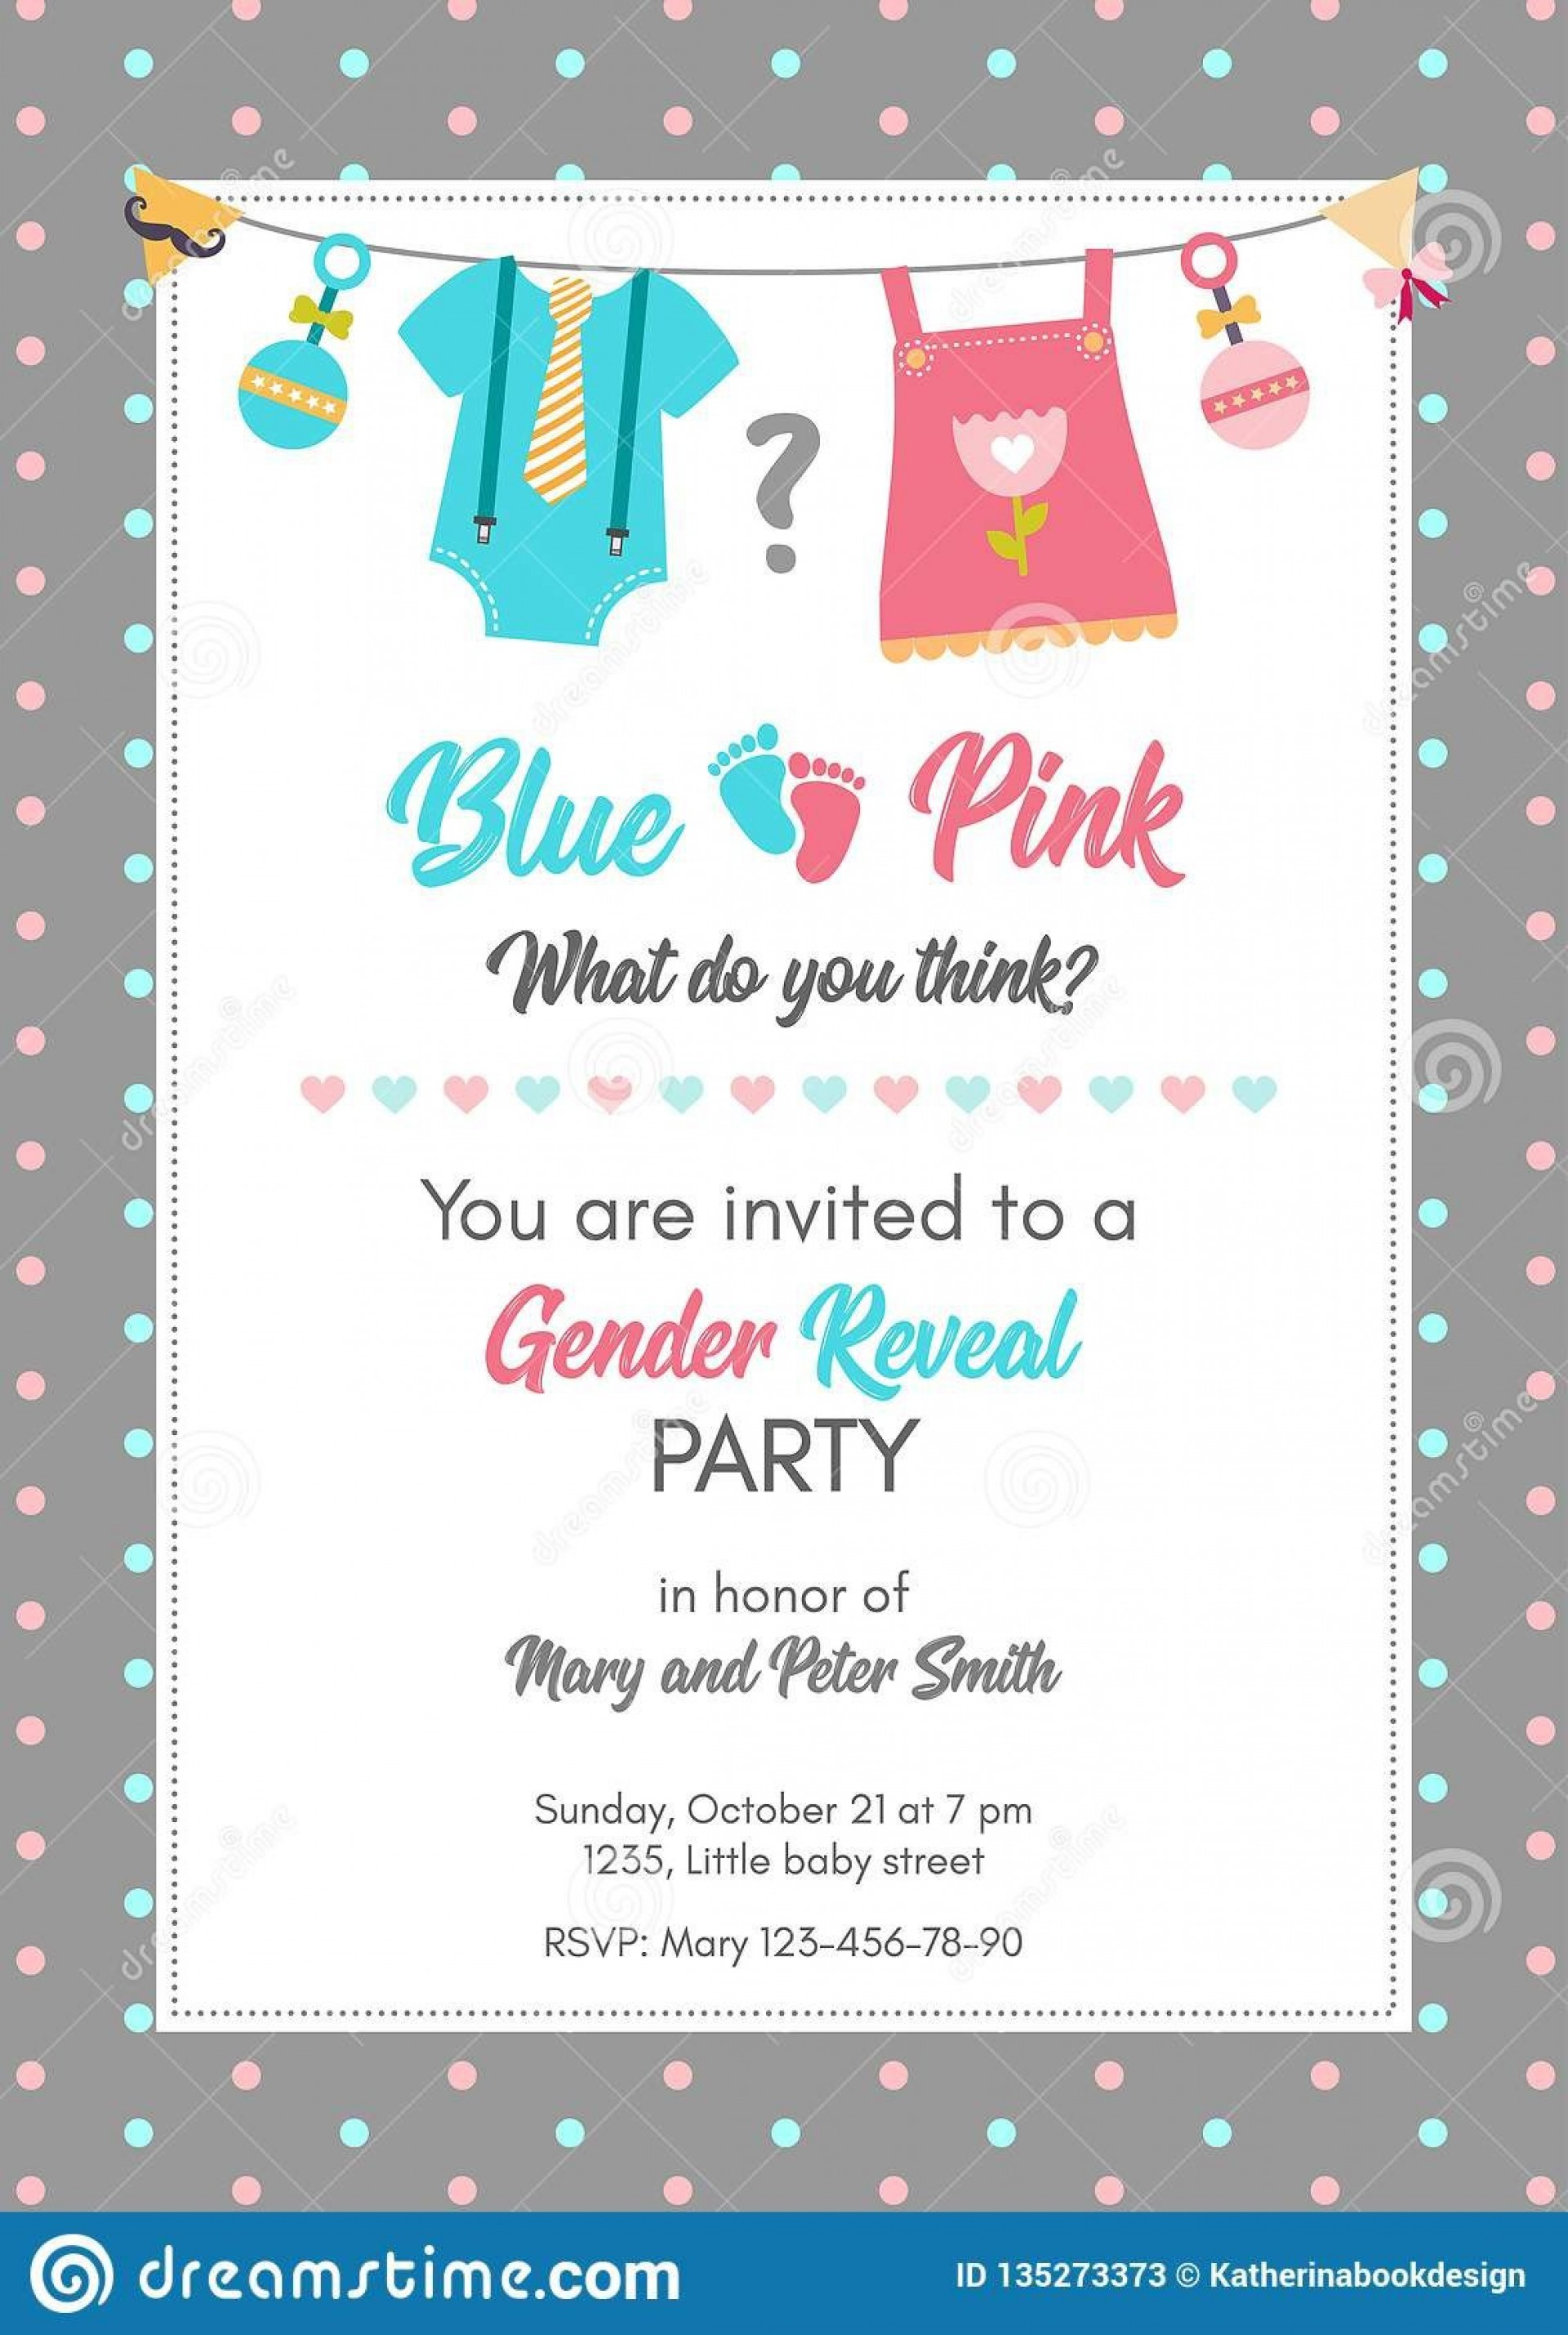 008 Dreaded Gender Reveal Invitation Template Image  Templates Party Free Printable Maker1920